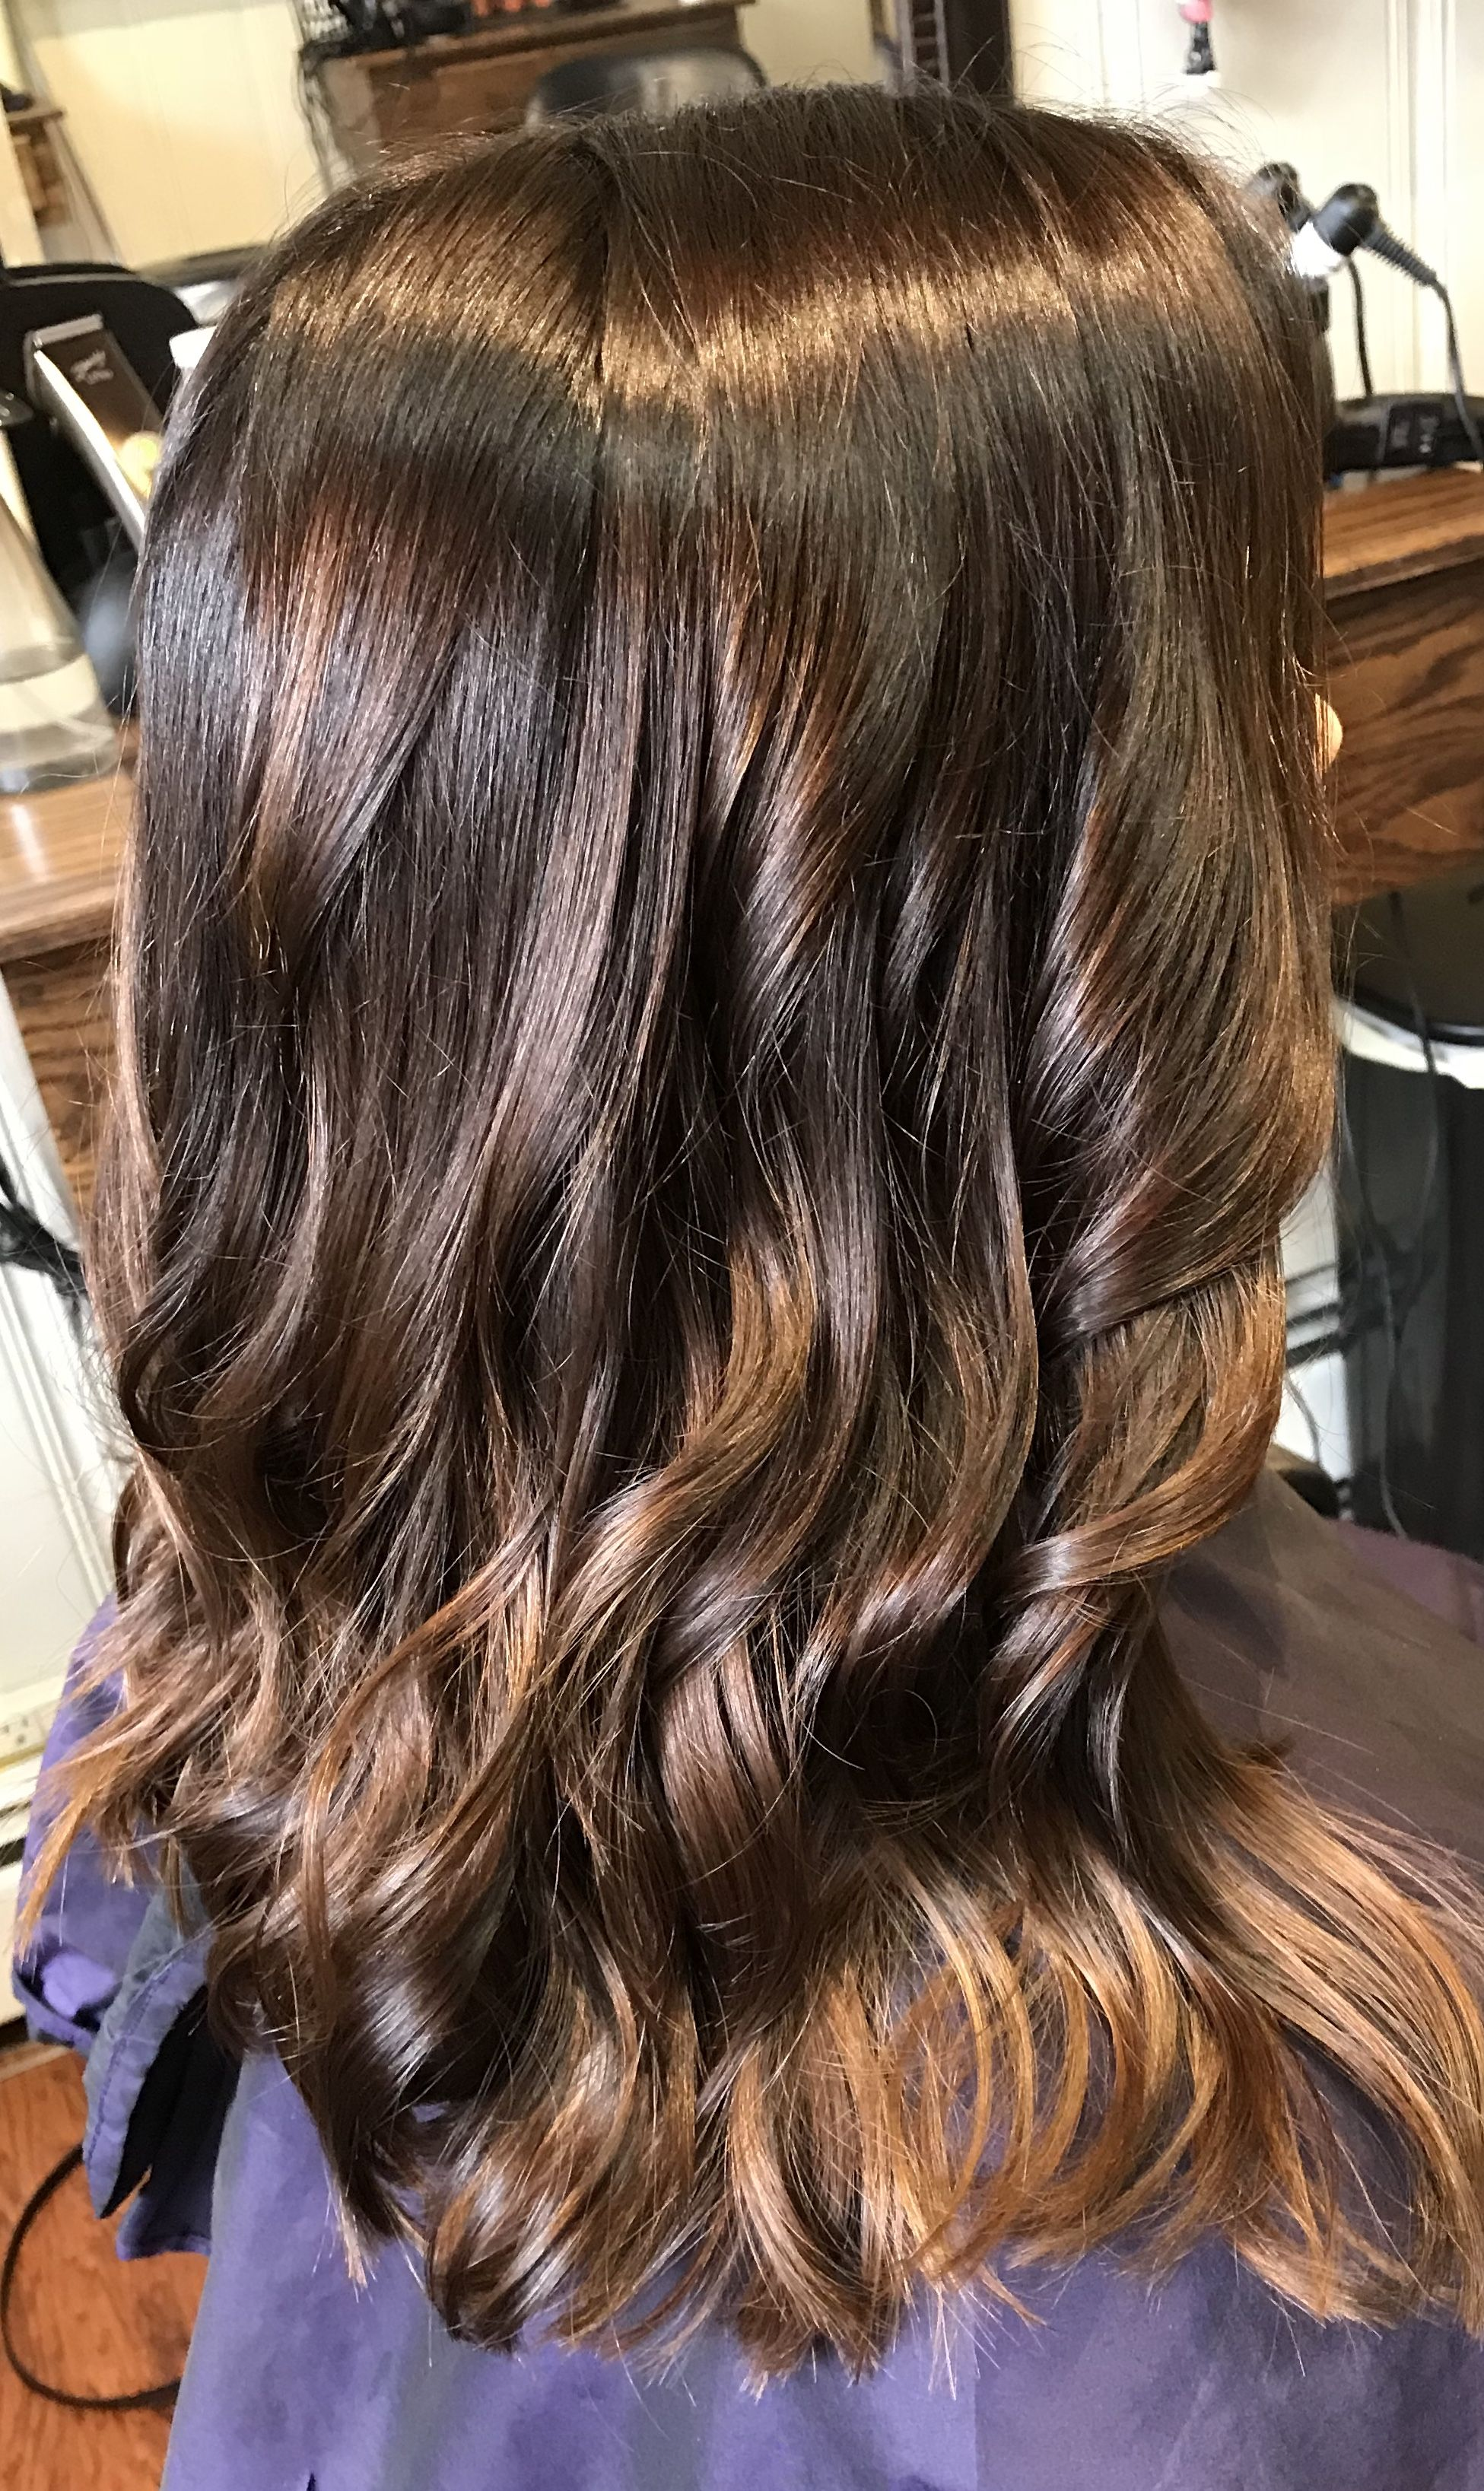 ombre dye and purple s into the us light haircuts lighting brown en transition season look hairstyles red ways to hair hottest